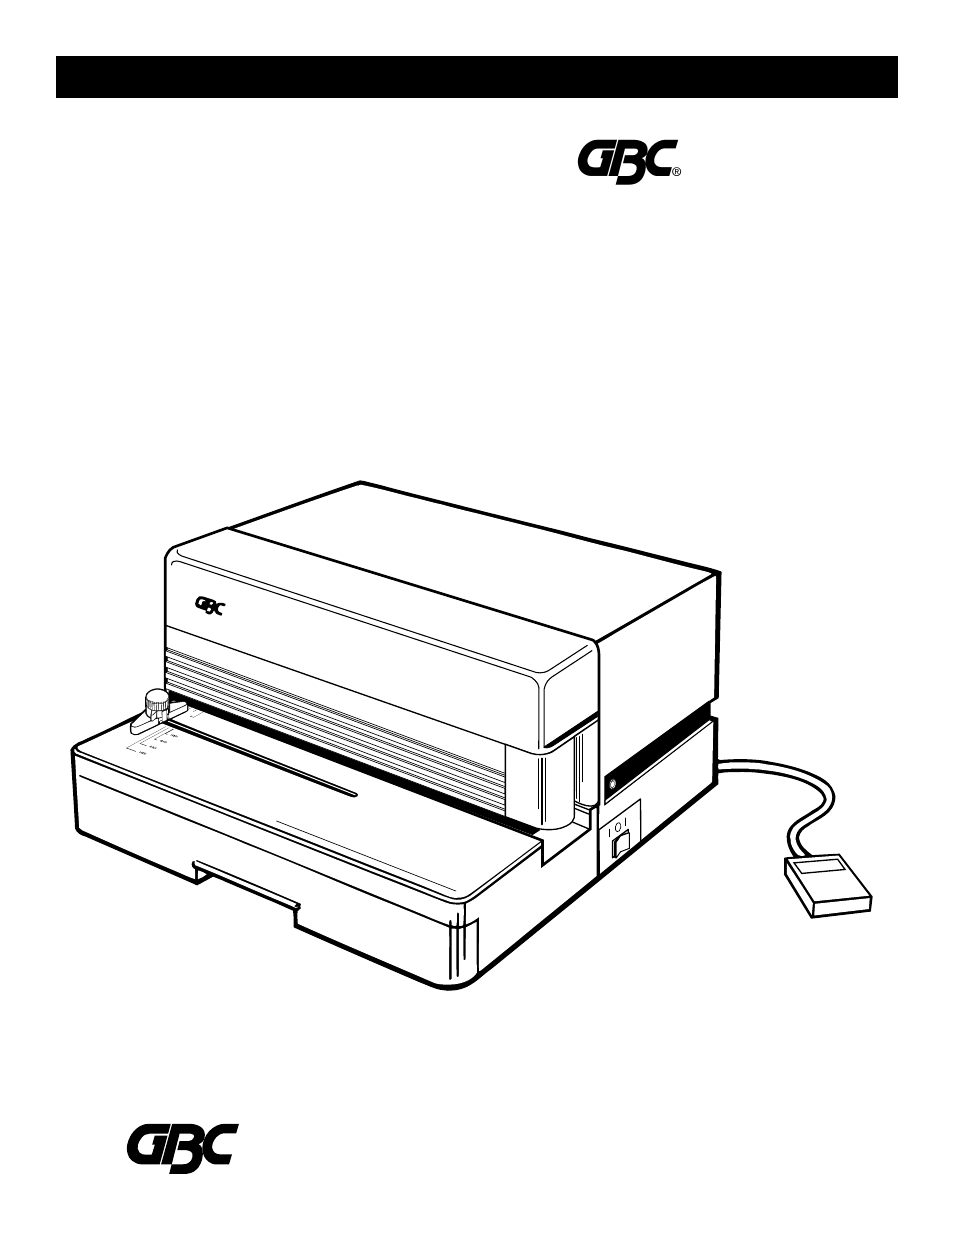 medium resolution of gbc magnapunch user manual 36 pages also for magna punch basic wiring diagram gbc wiring diagram